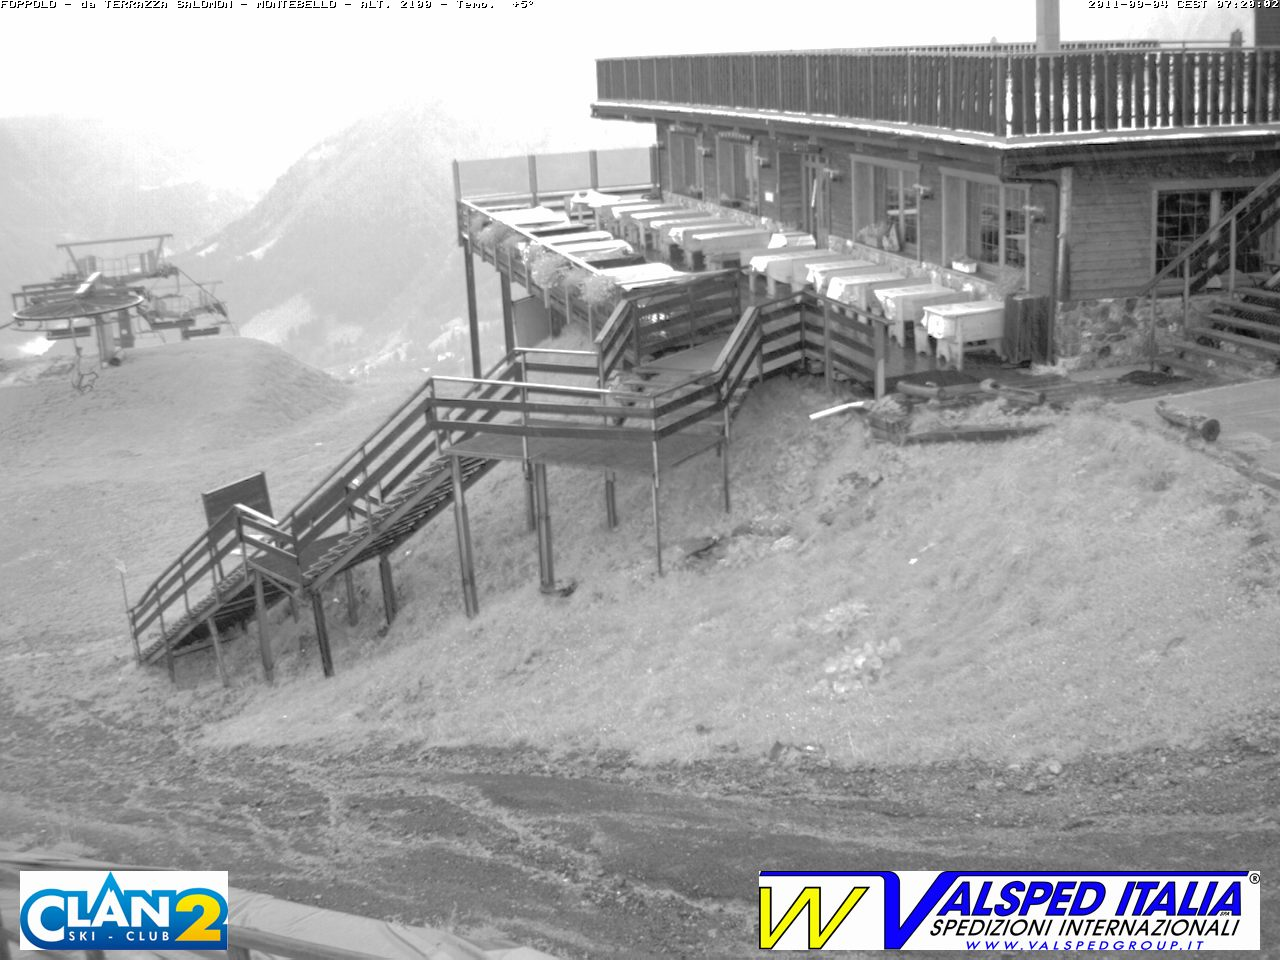 Foppolo 2000m (BG) webcam - Clicca per ingrandire